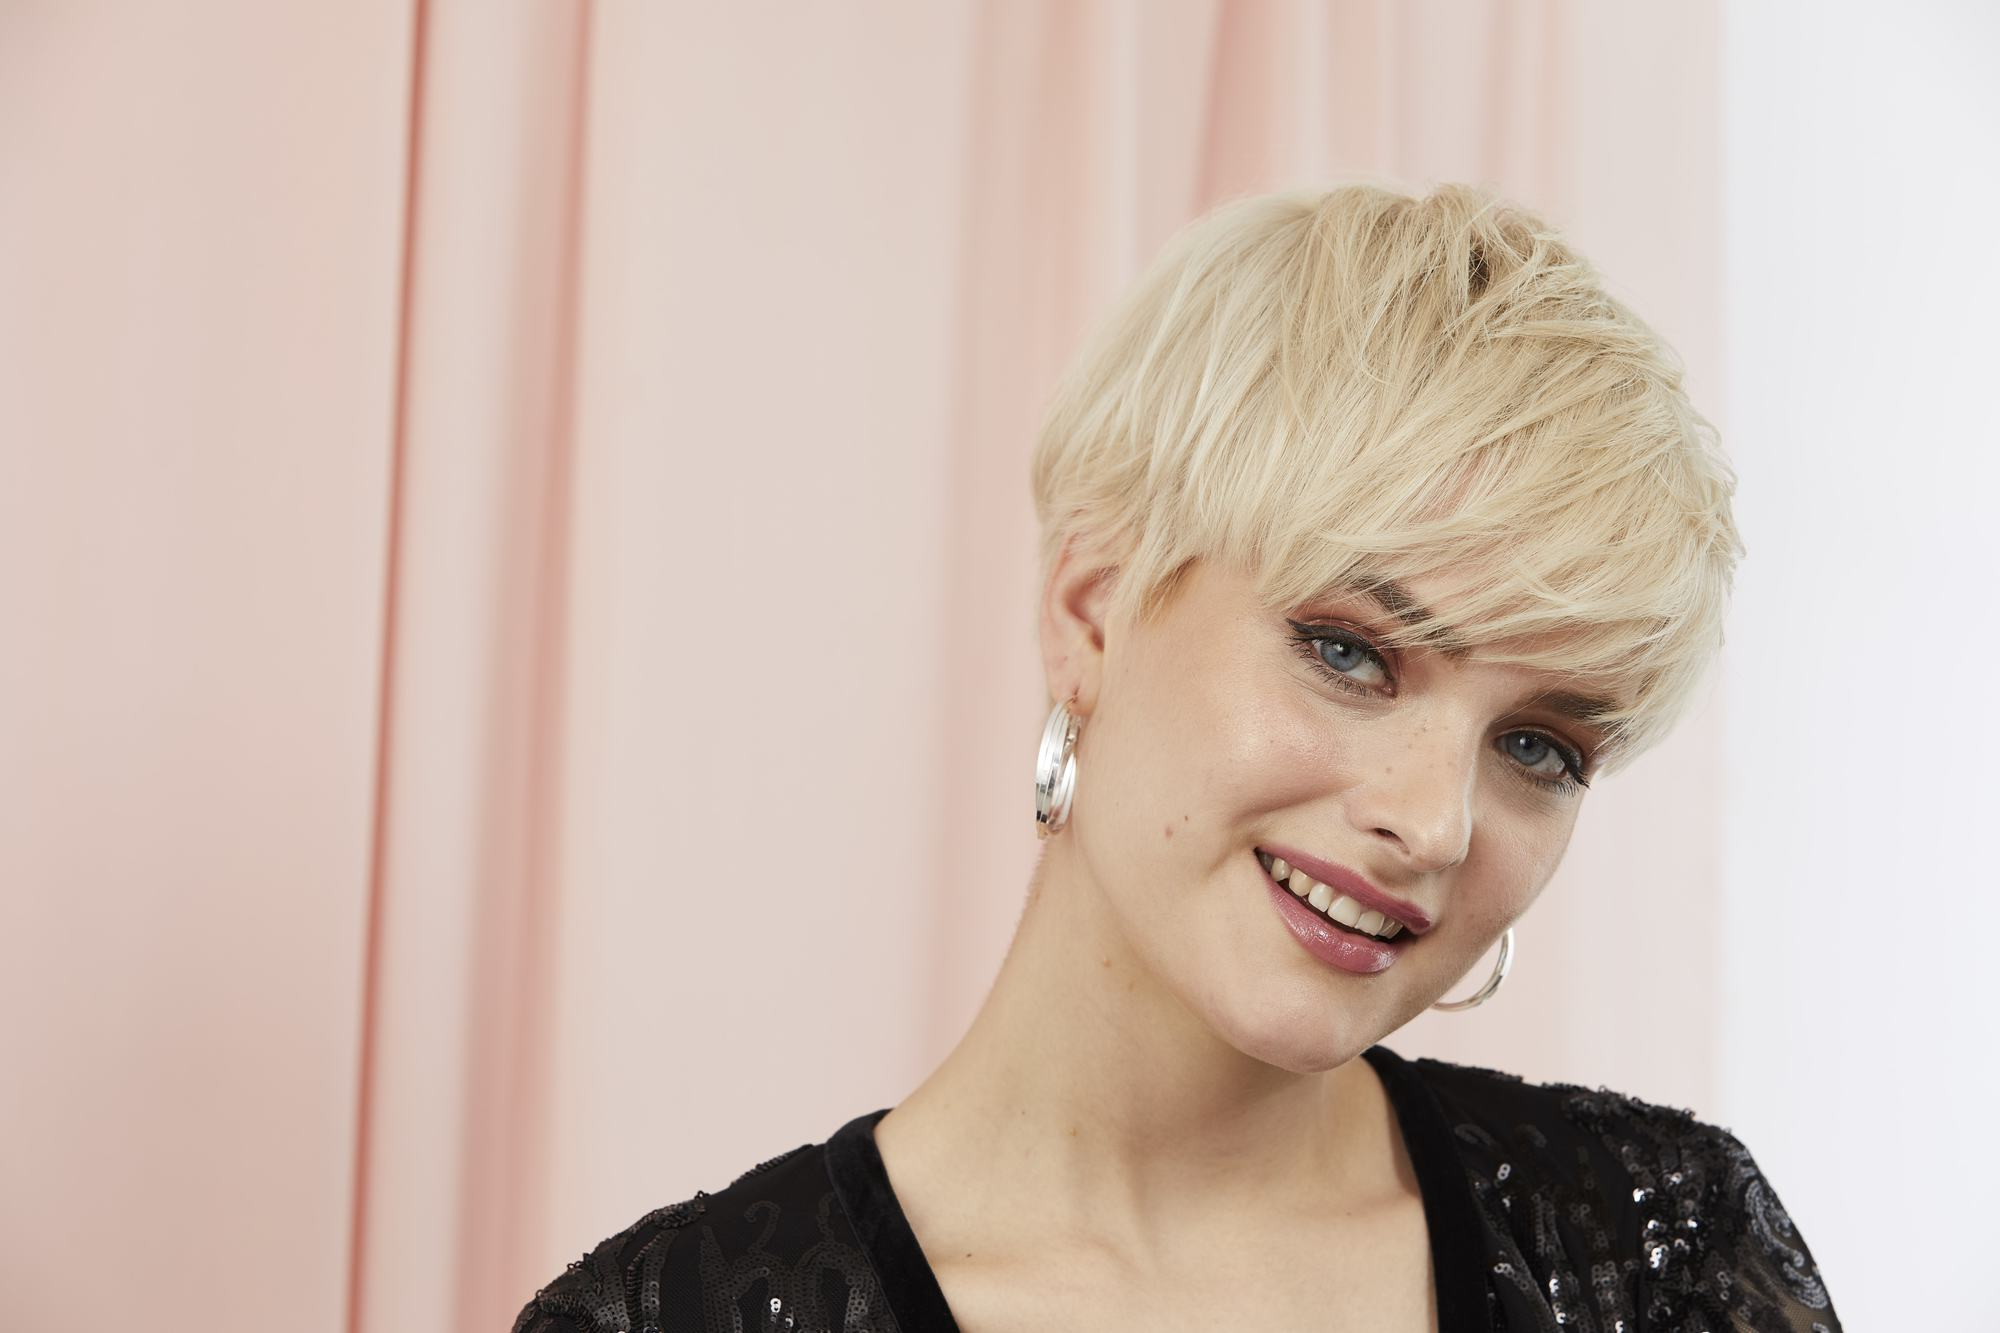 35 Best Pixie Cut Hairstyles For 2019 You Will Want To See Regarding Messy Highlighted Pixie Haircuts With Long Side Bangs (View 10 of 20)